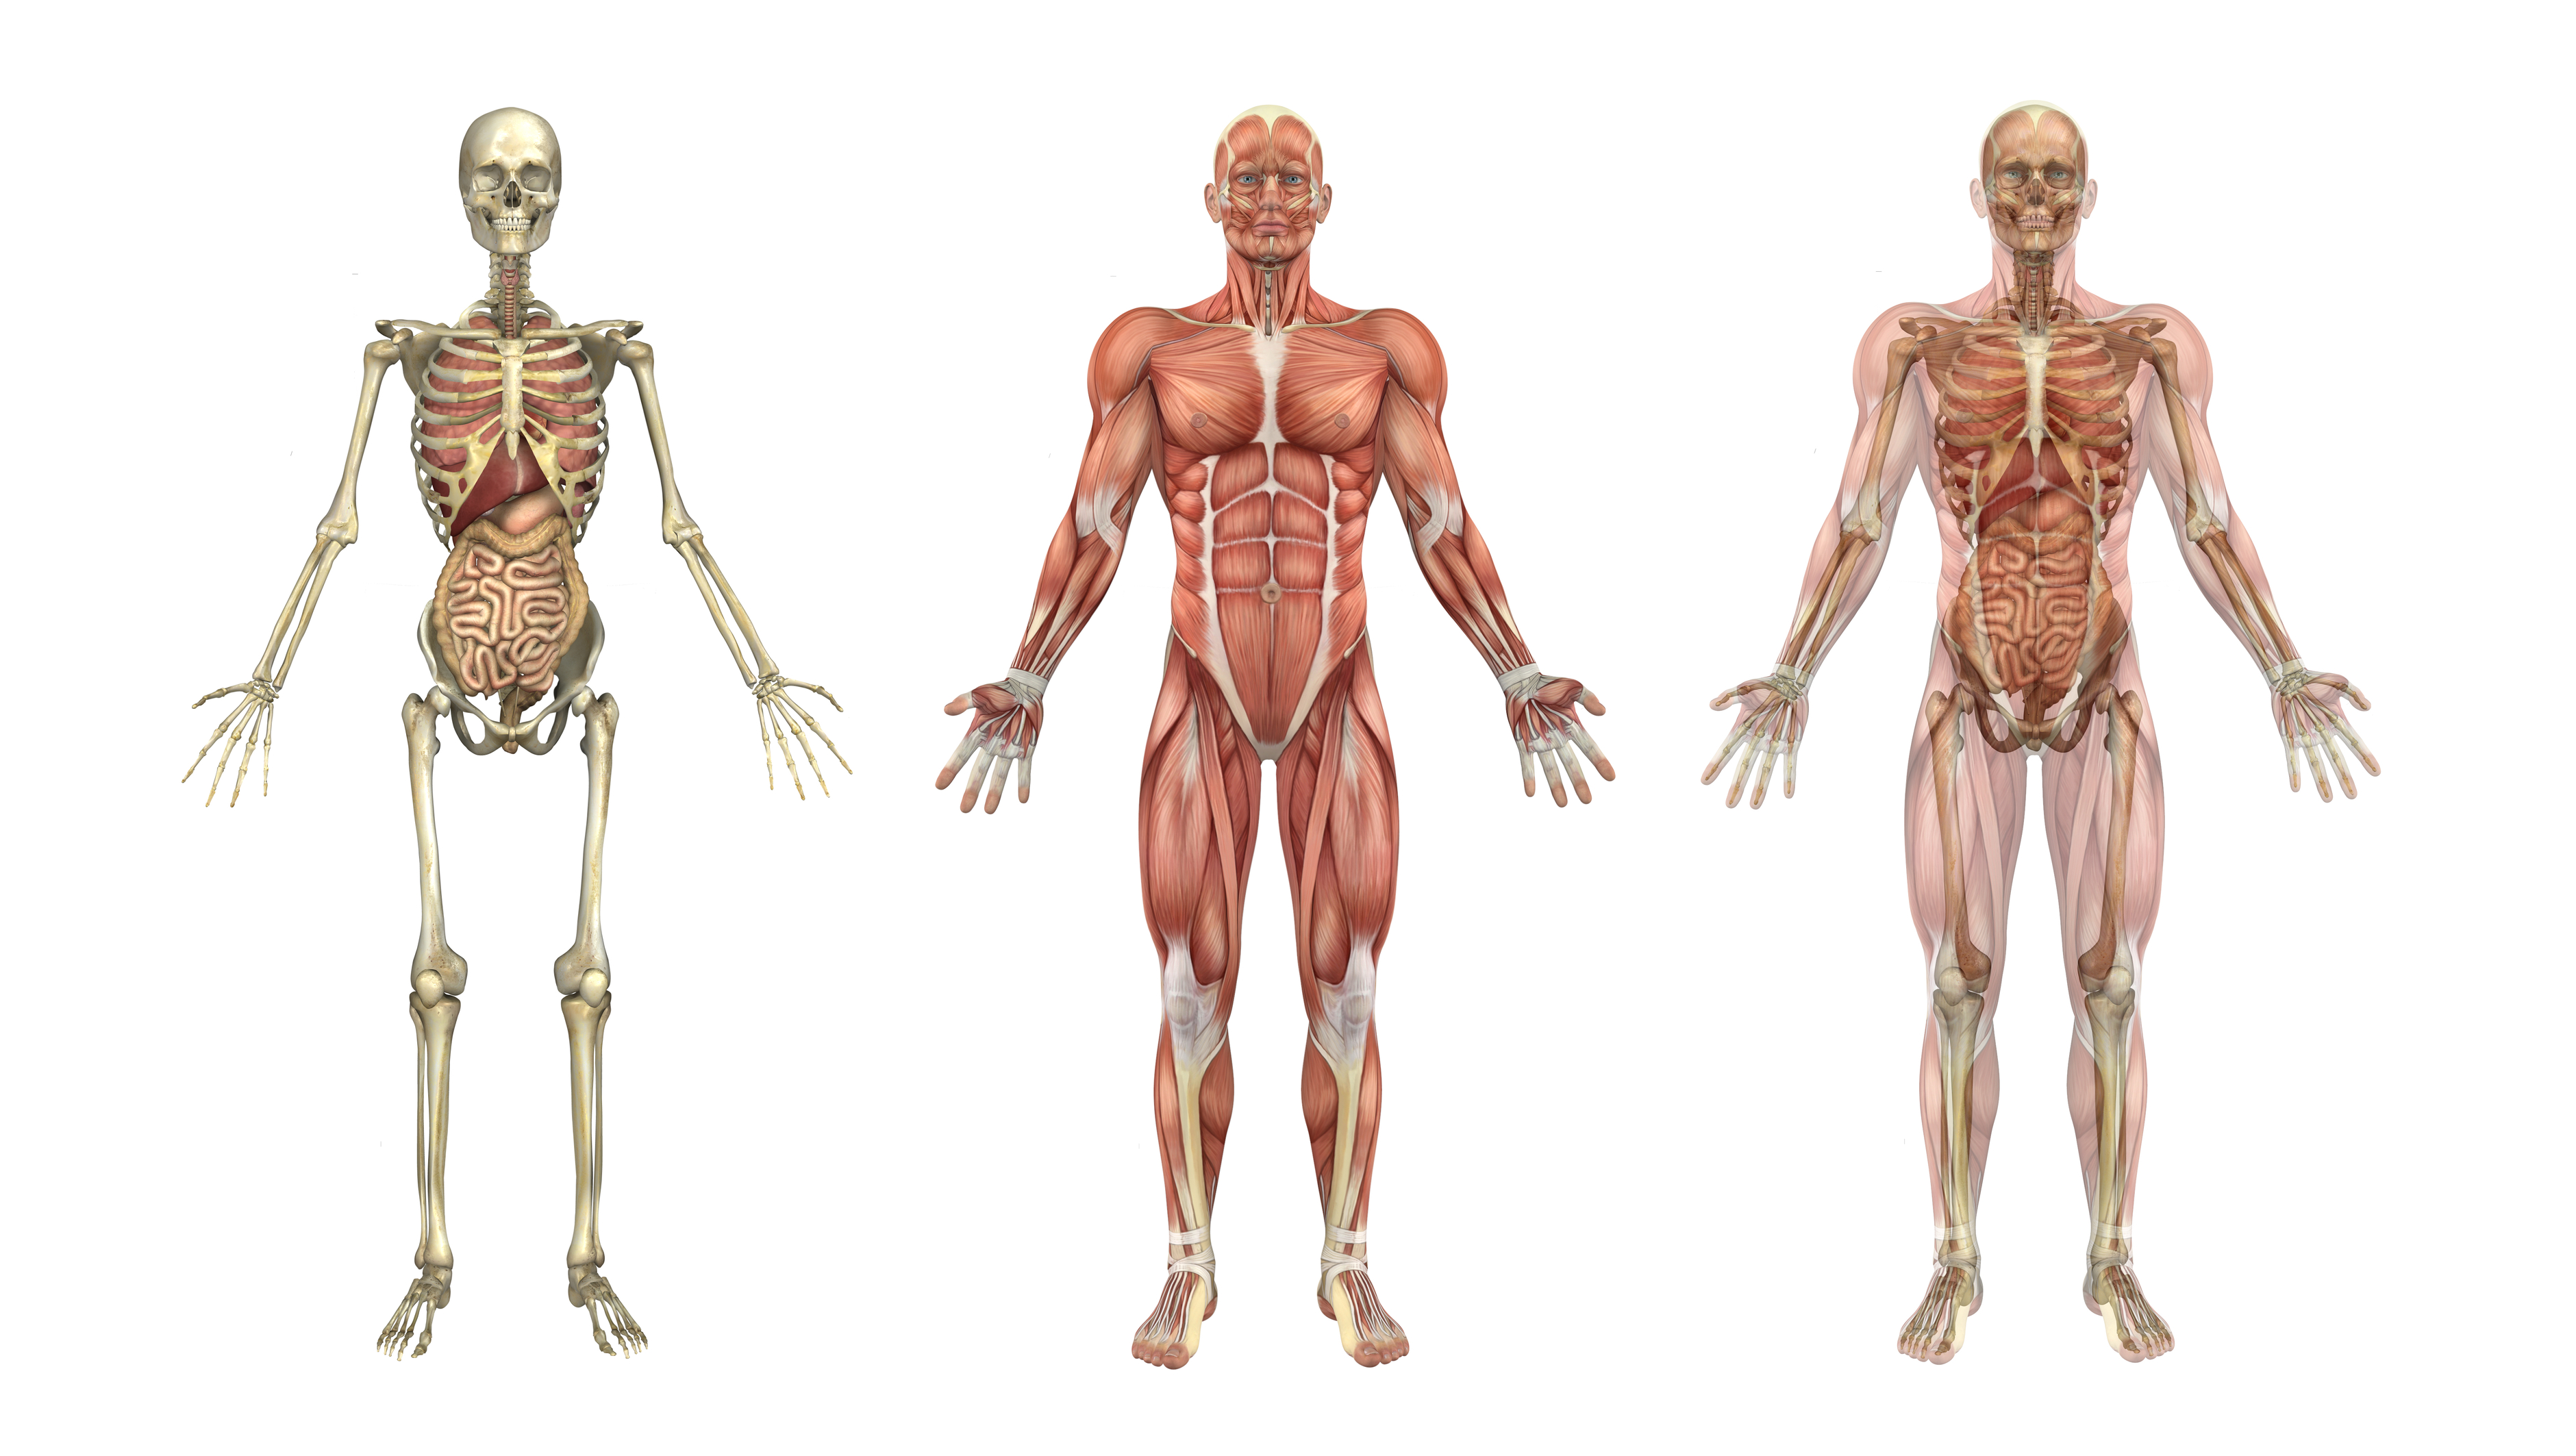 human skeleton, muscles, and internal organs - kidspressmagazine, Skeleton